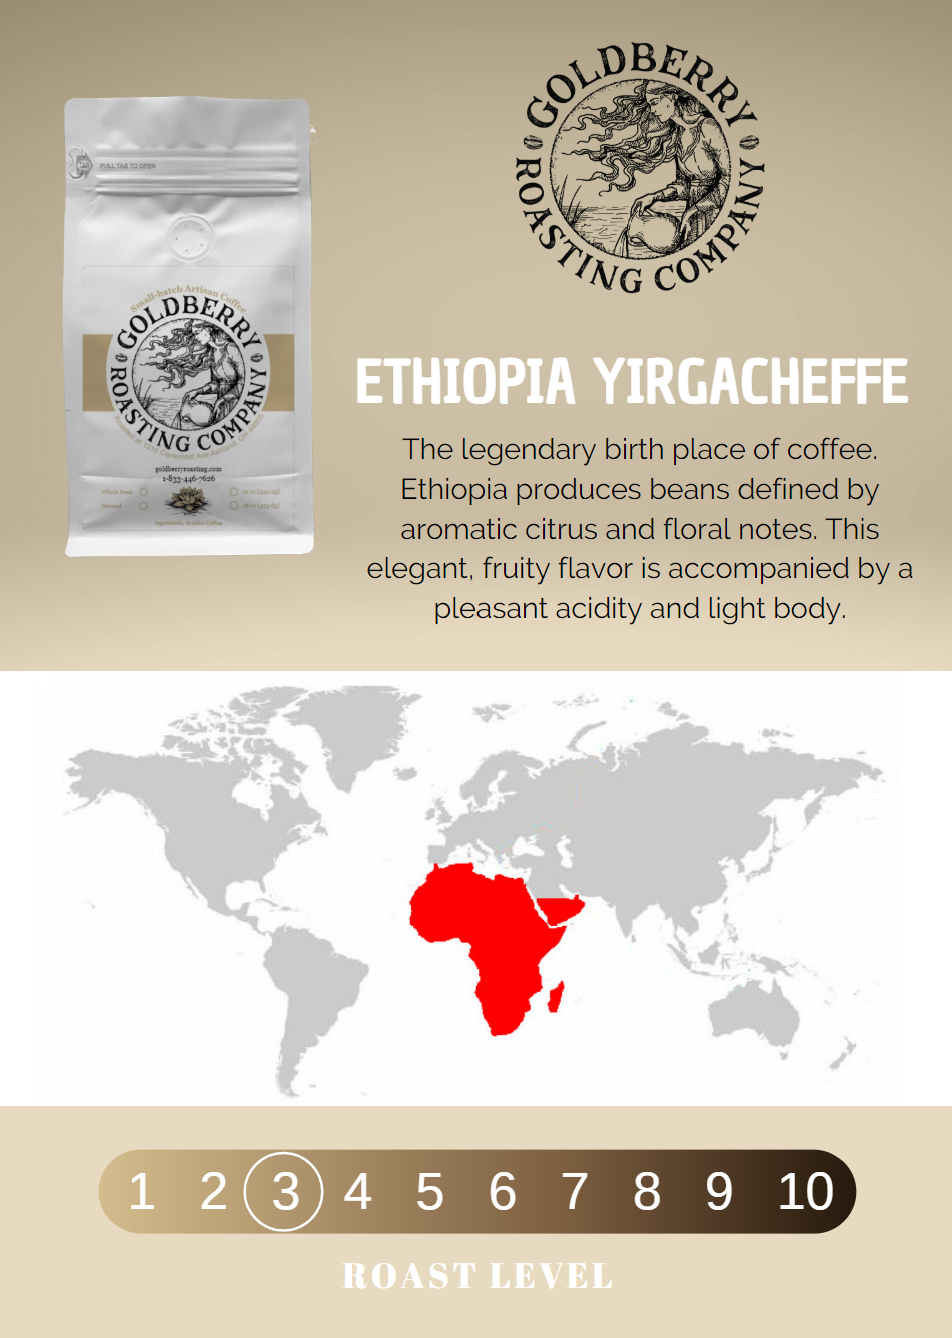 Wholesale - Ethiopia Yirgacheffe Fair Trade